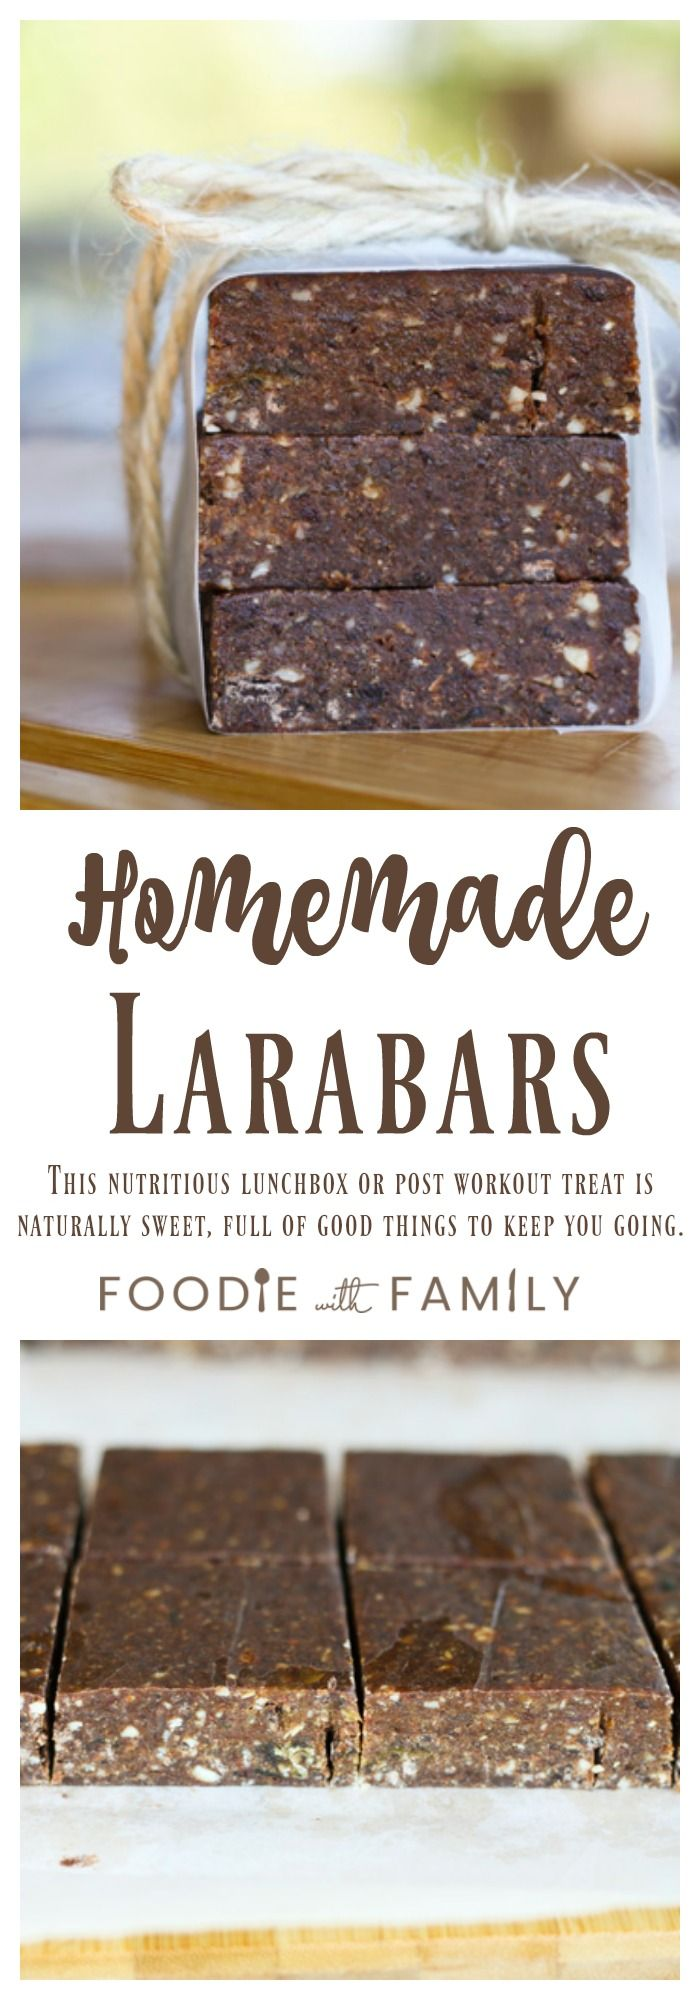 Homemade Larabars: This super nutritious, delicious lunchbox or post workout snack tastes more like candy bars than health food!